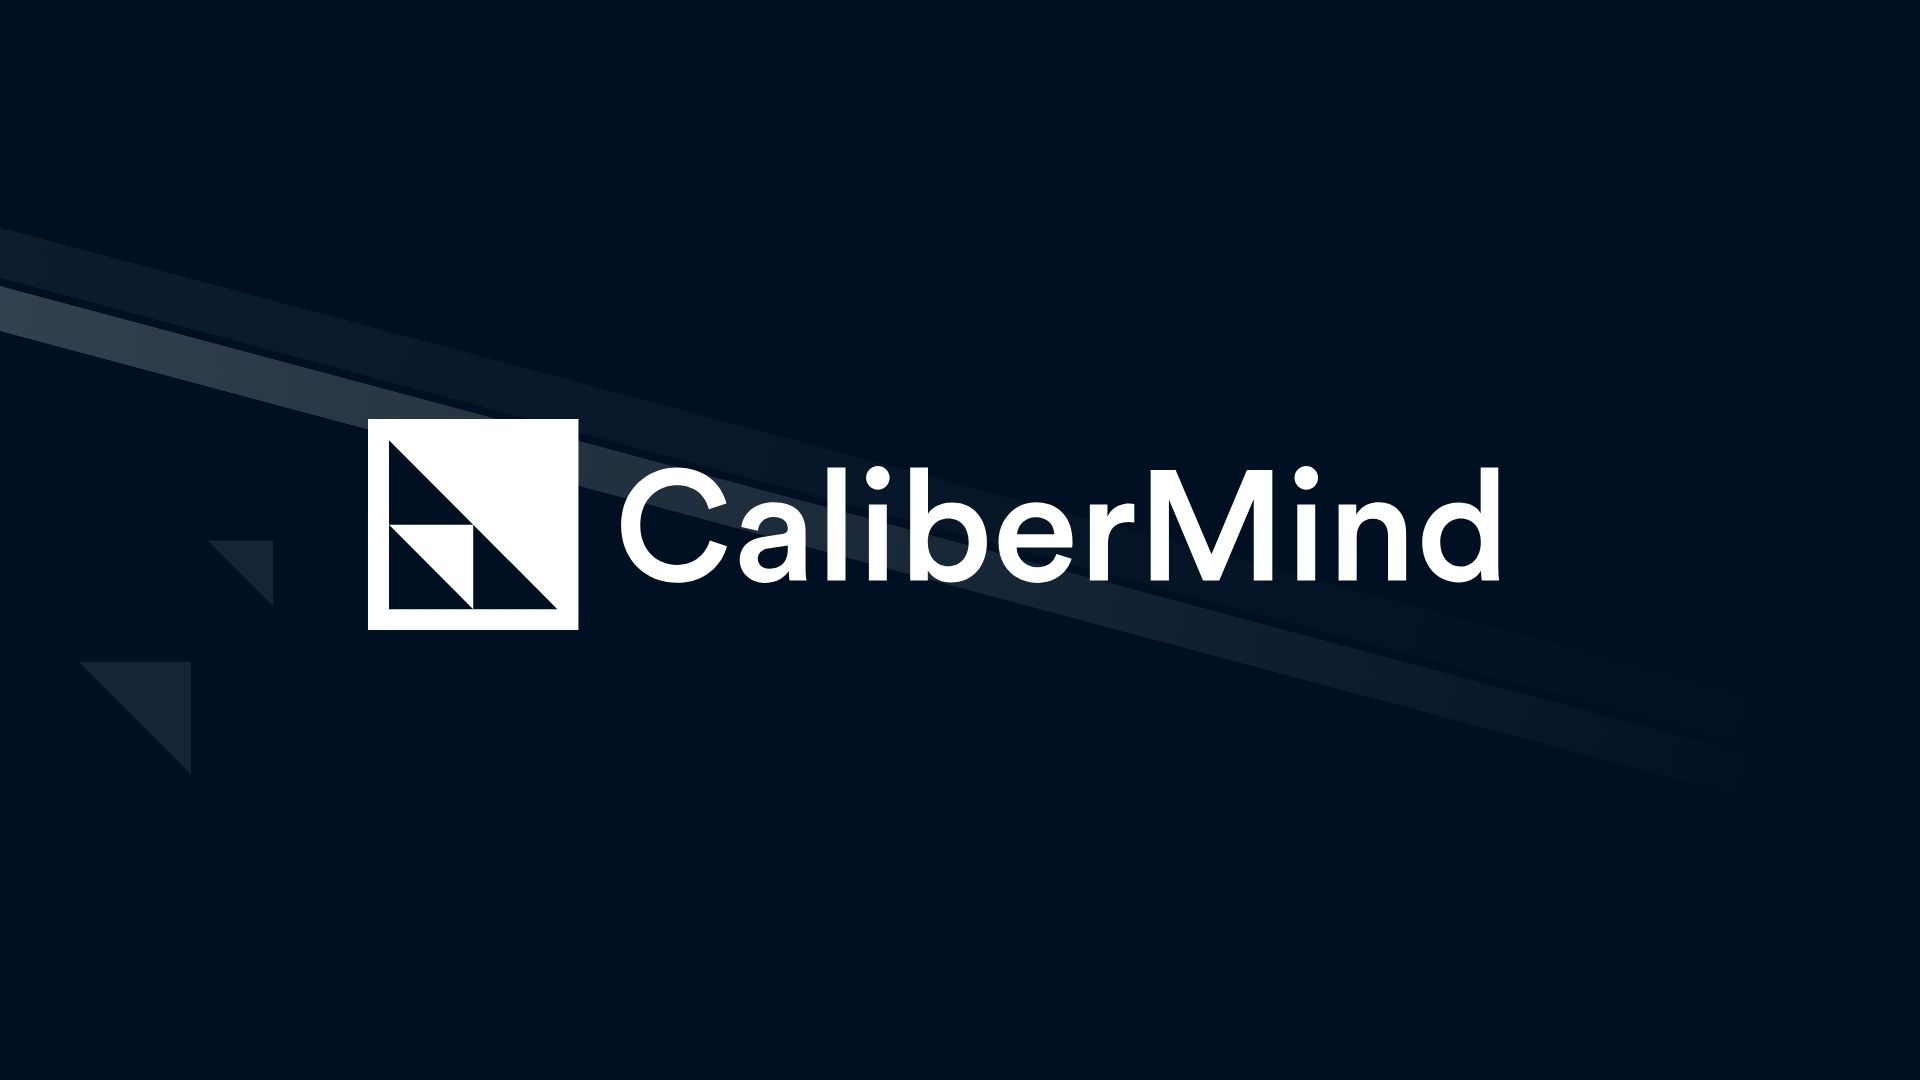 See CaliberMind in Action